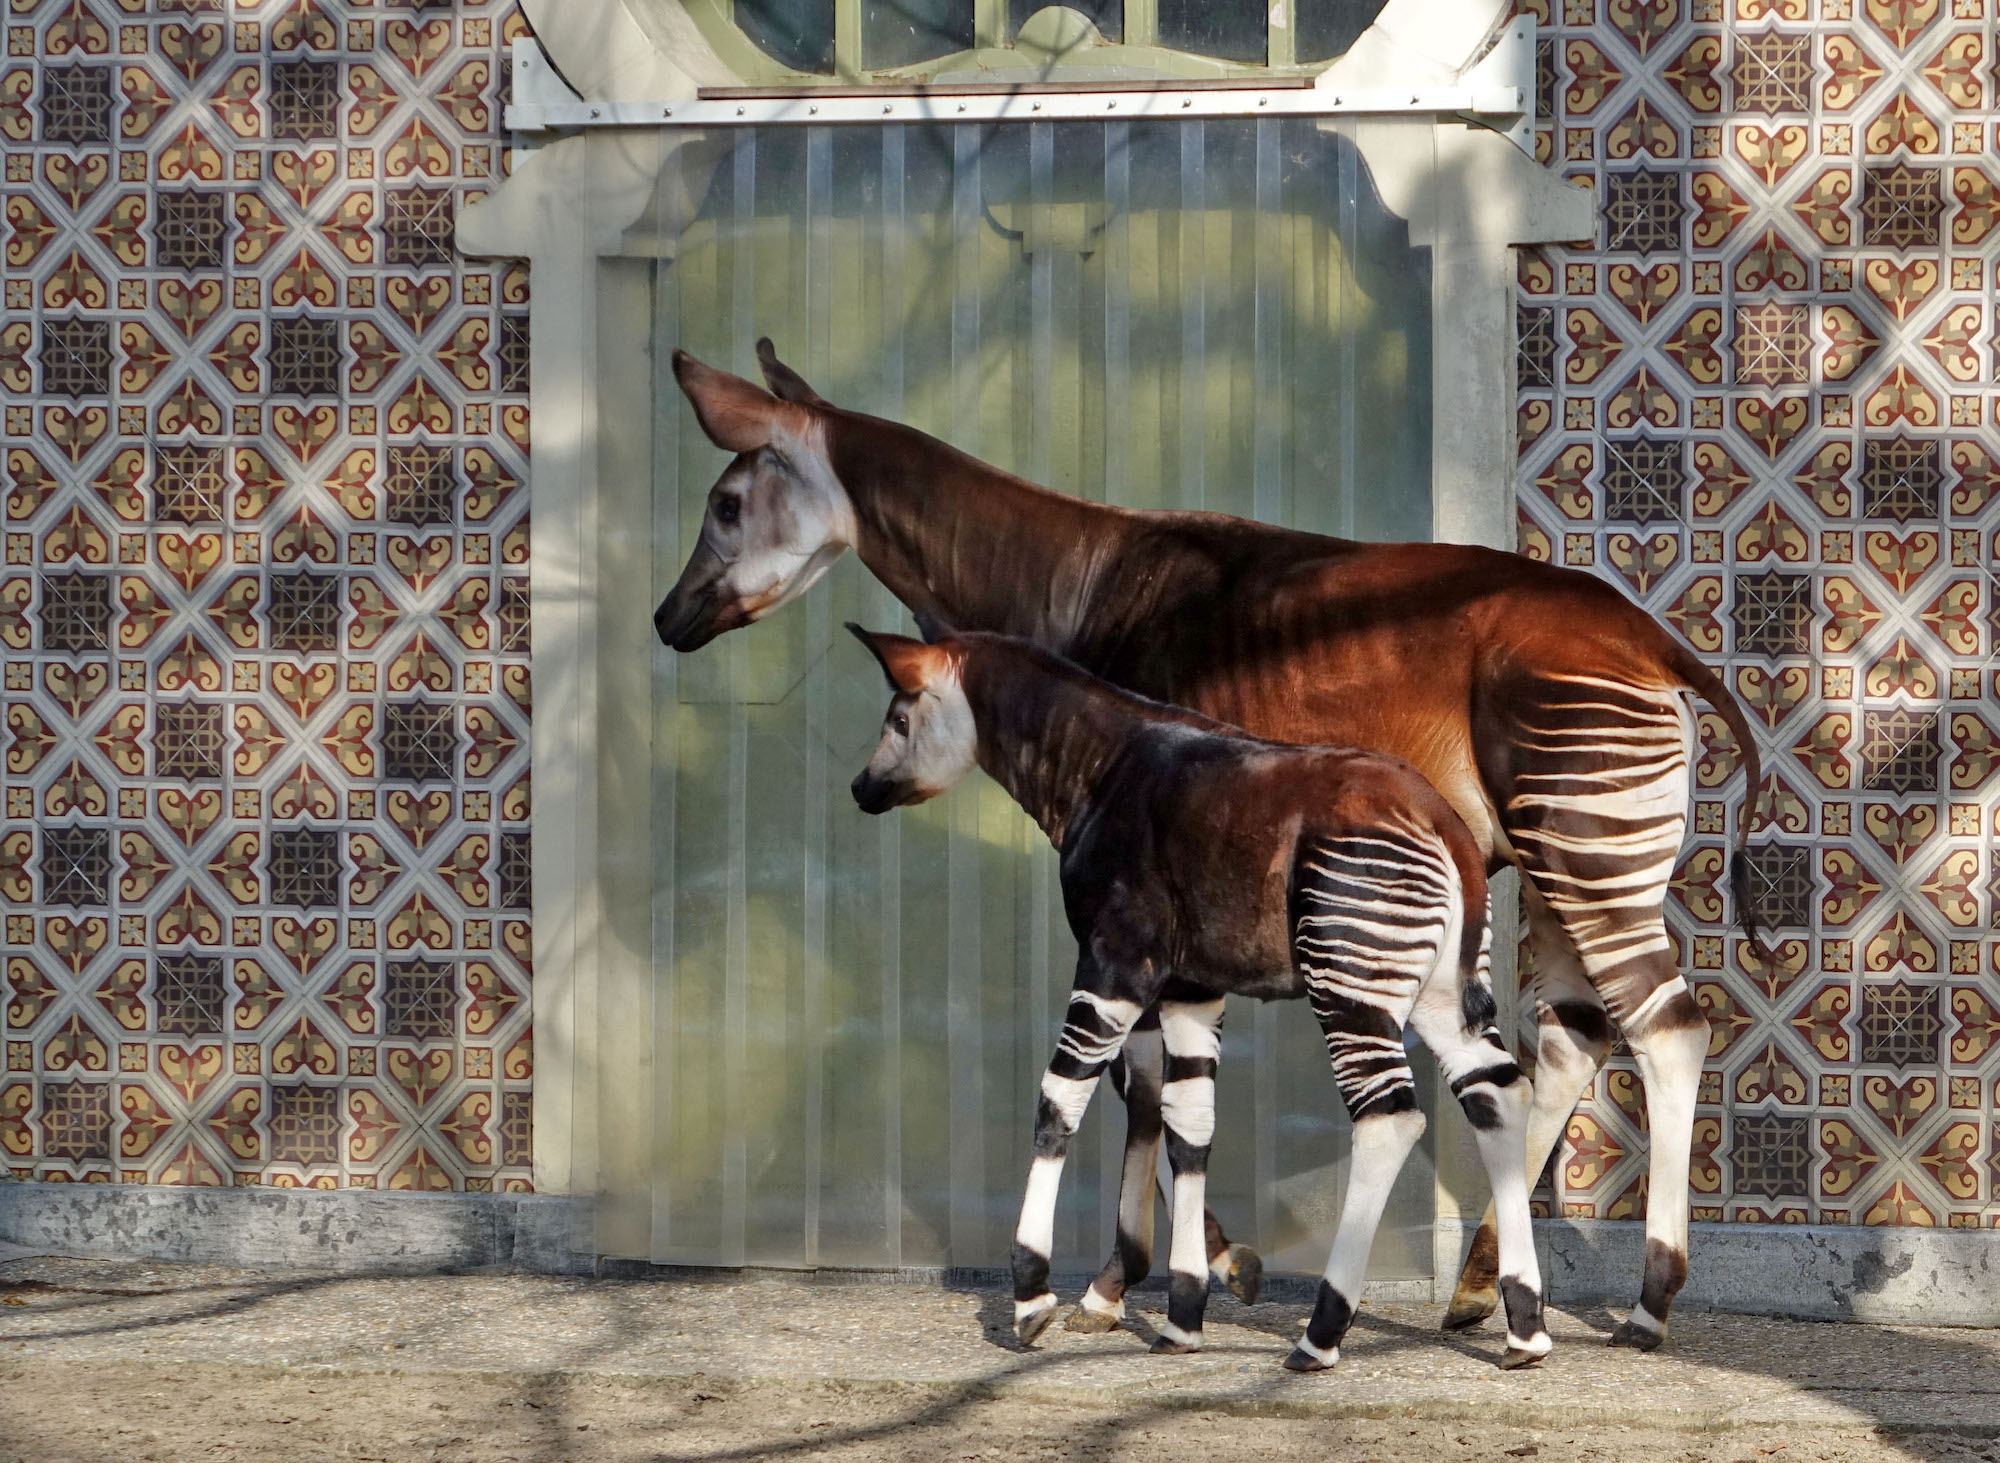 A female okapi stands next to its calf at Antwerp Zoo.